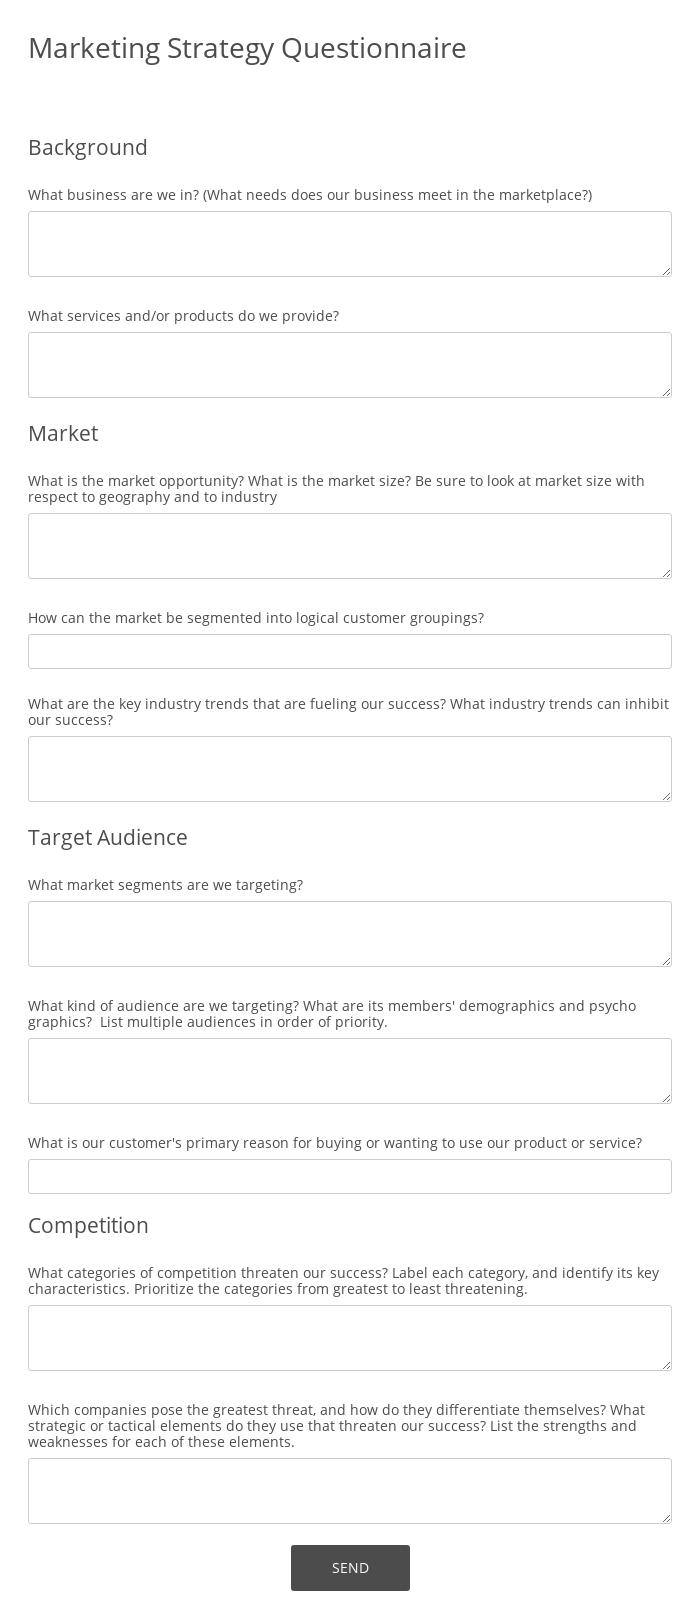 Marketing Strategy Questionnaire